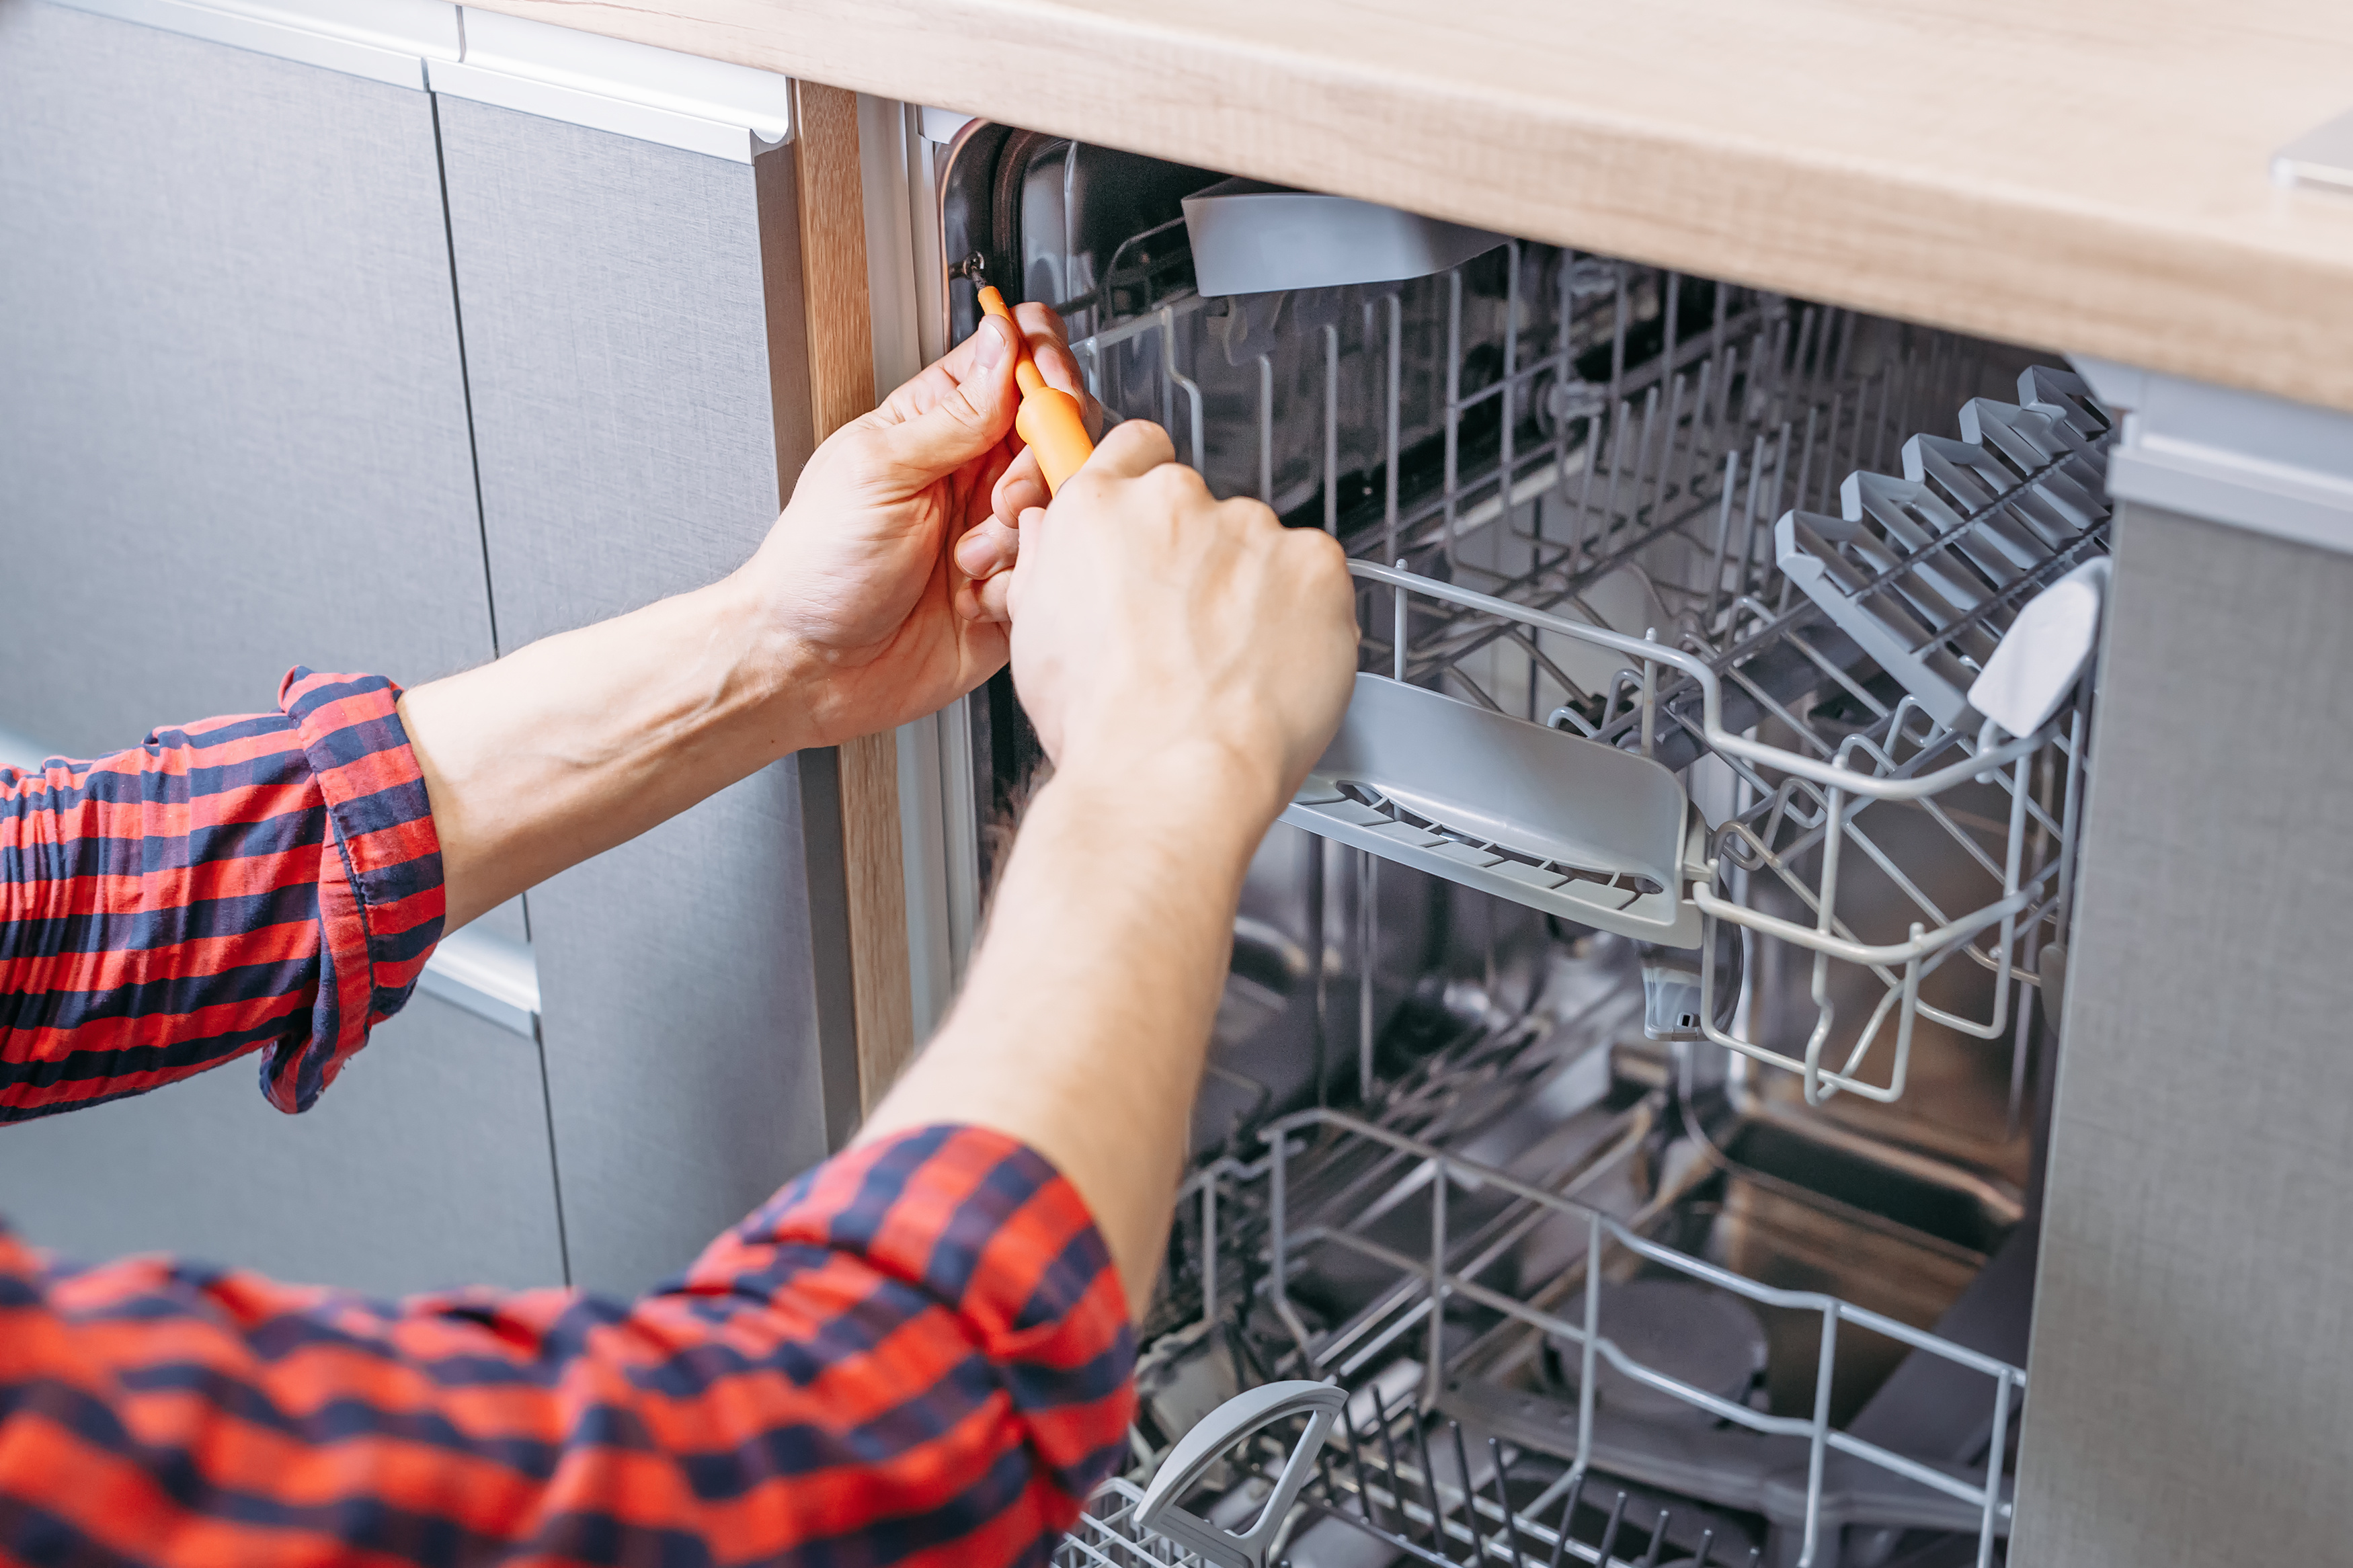 How to: install a dishwasher   Pittsburgh   Terry's Plumbing